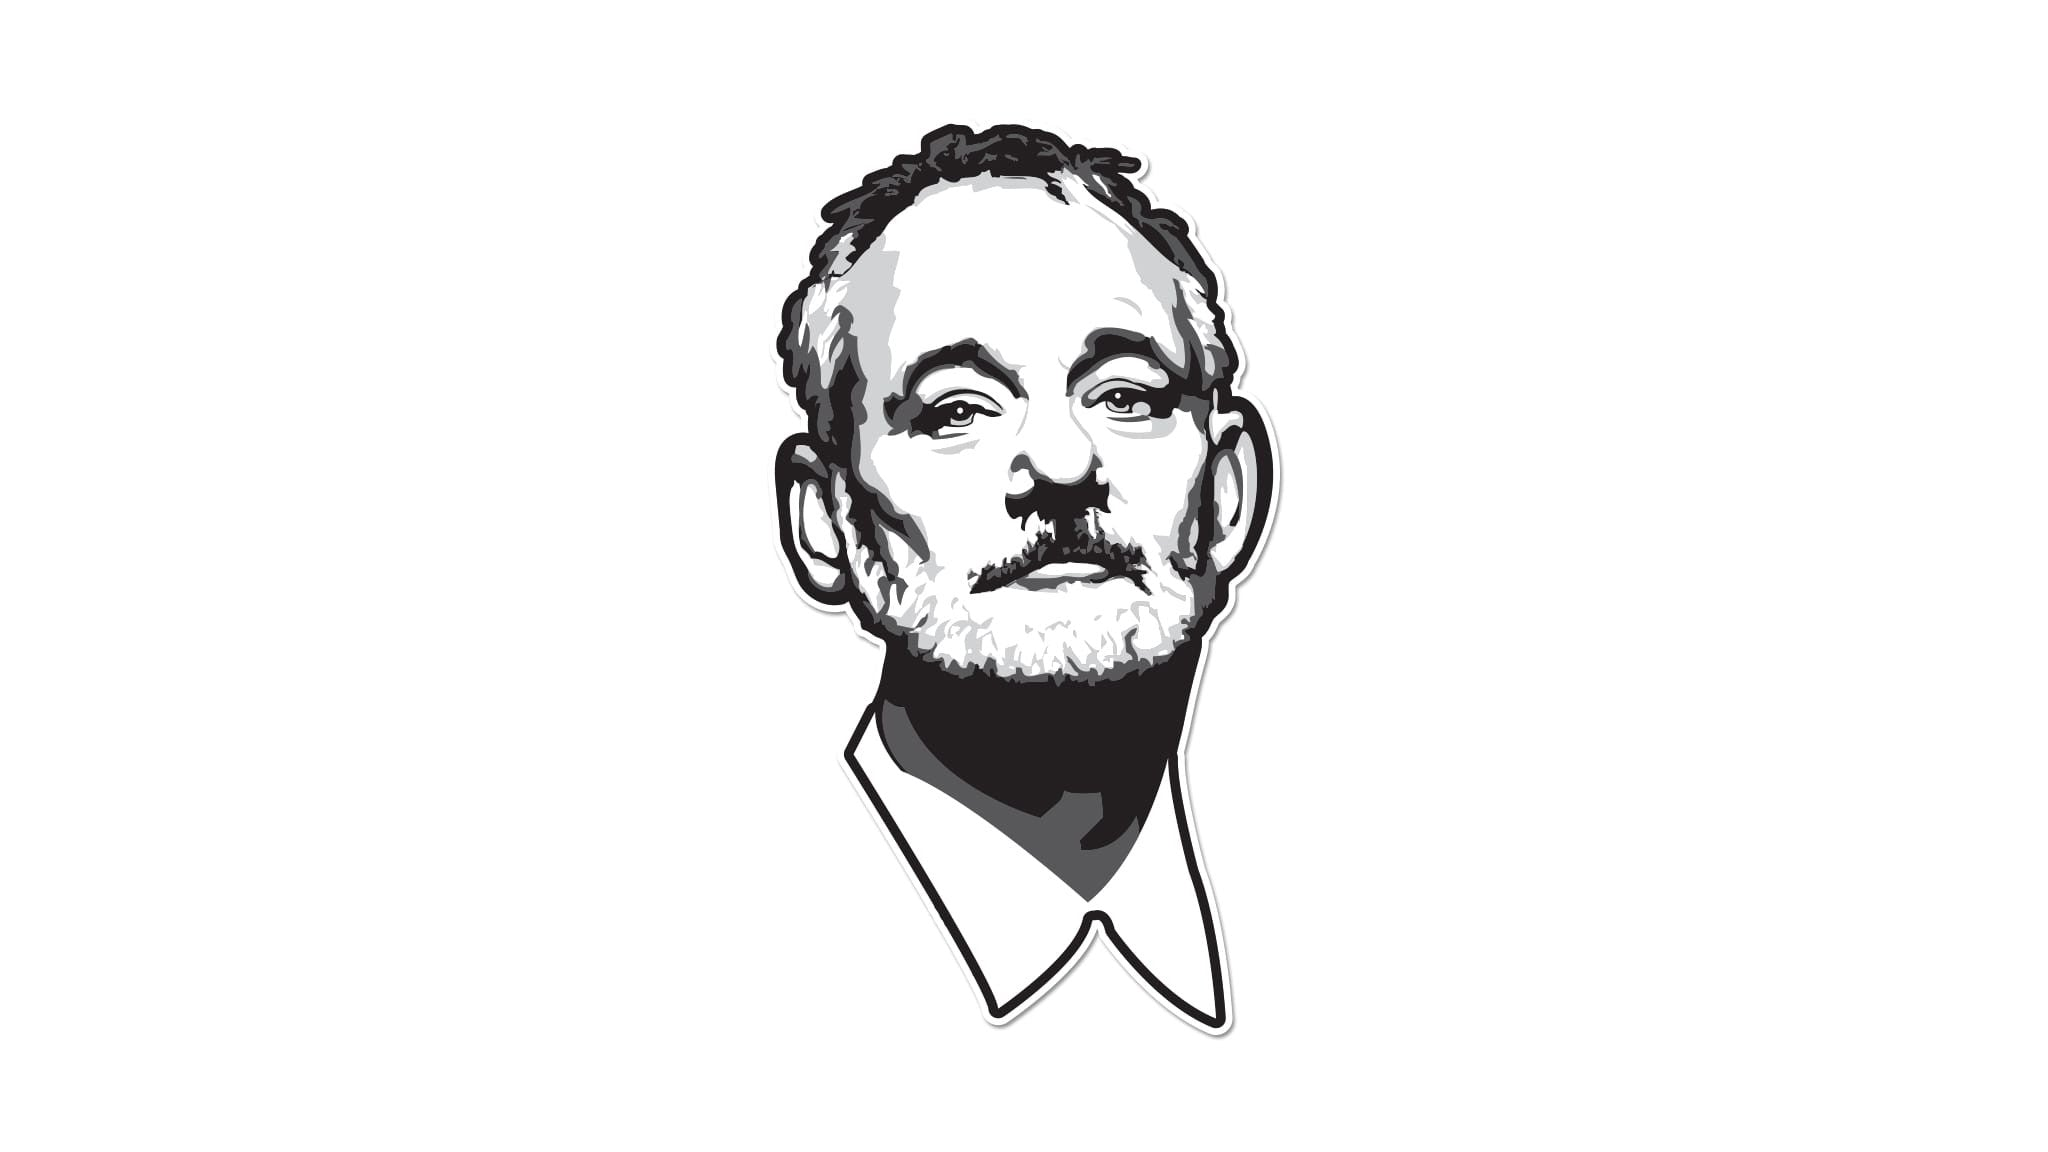 Bill Murray Line Art Wiring Diagrams The Link A2b 1 Telephone Intercom 8211 Dtmf Version Circuit Fucking Sticker Car Decal Chivery Rh Thechivery Com Lines From